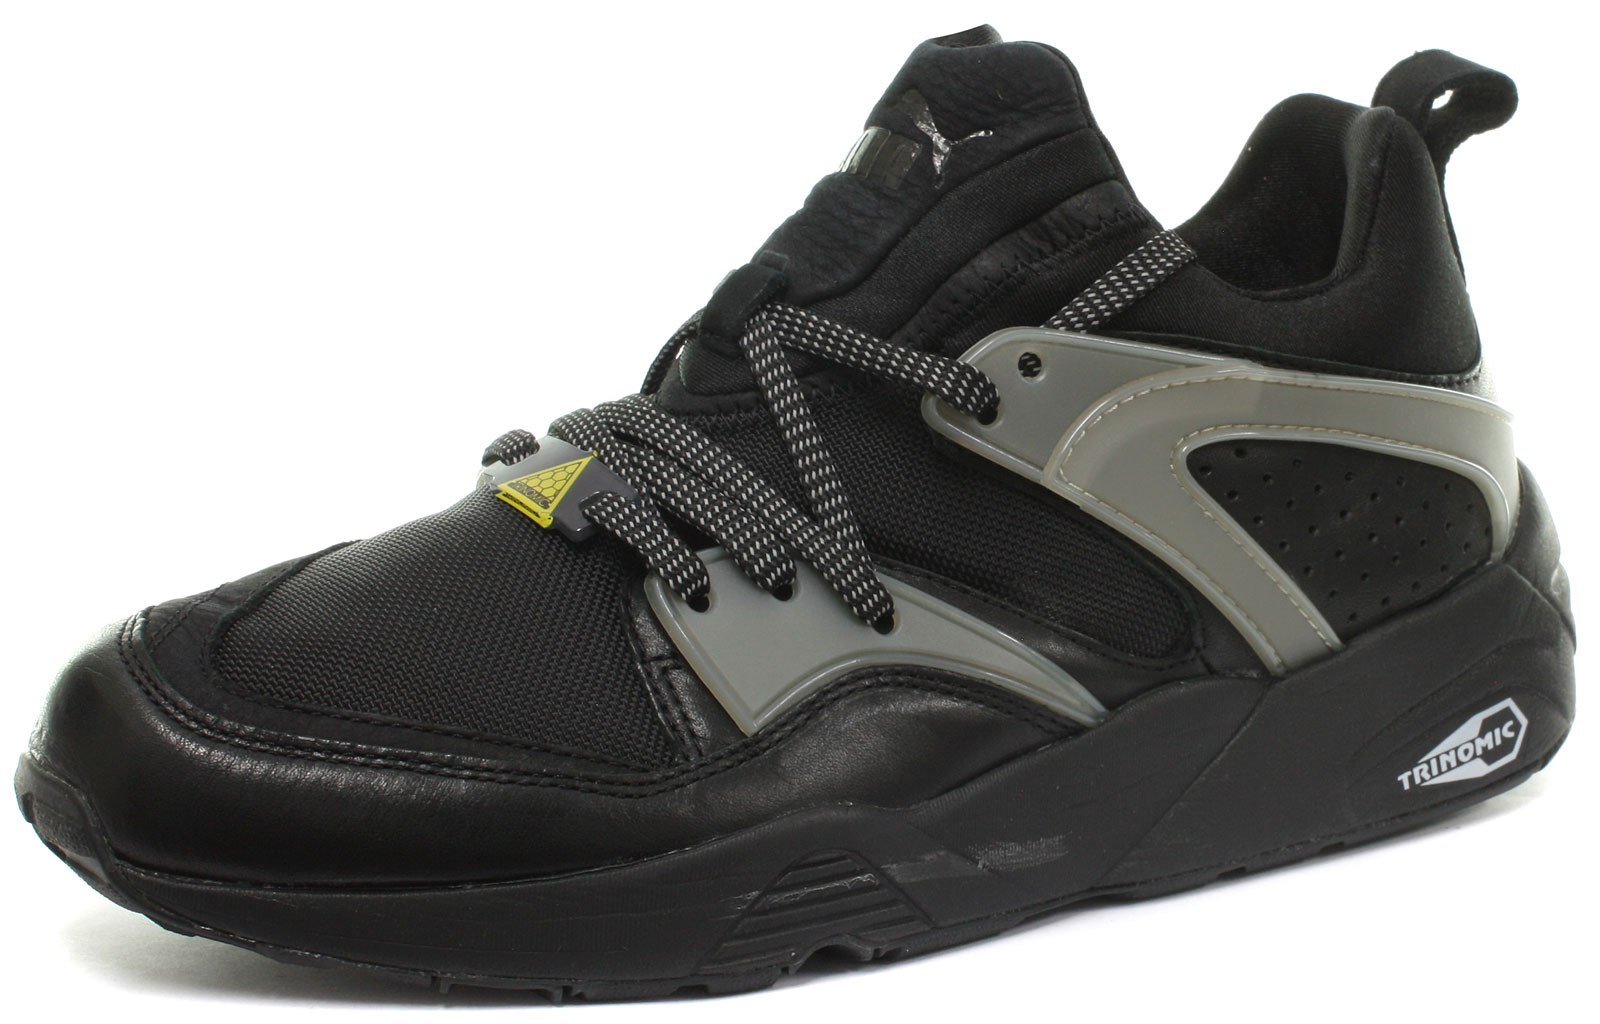 NEU Puma Blaze Of Glory Leder Unisex Trainers ALL SIZES